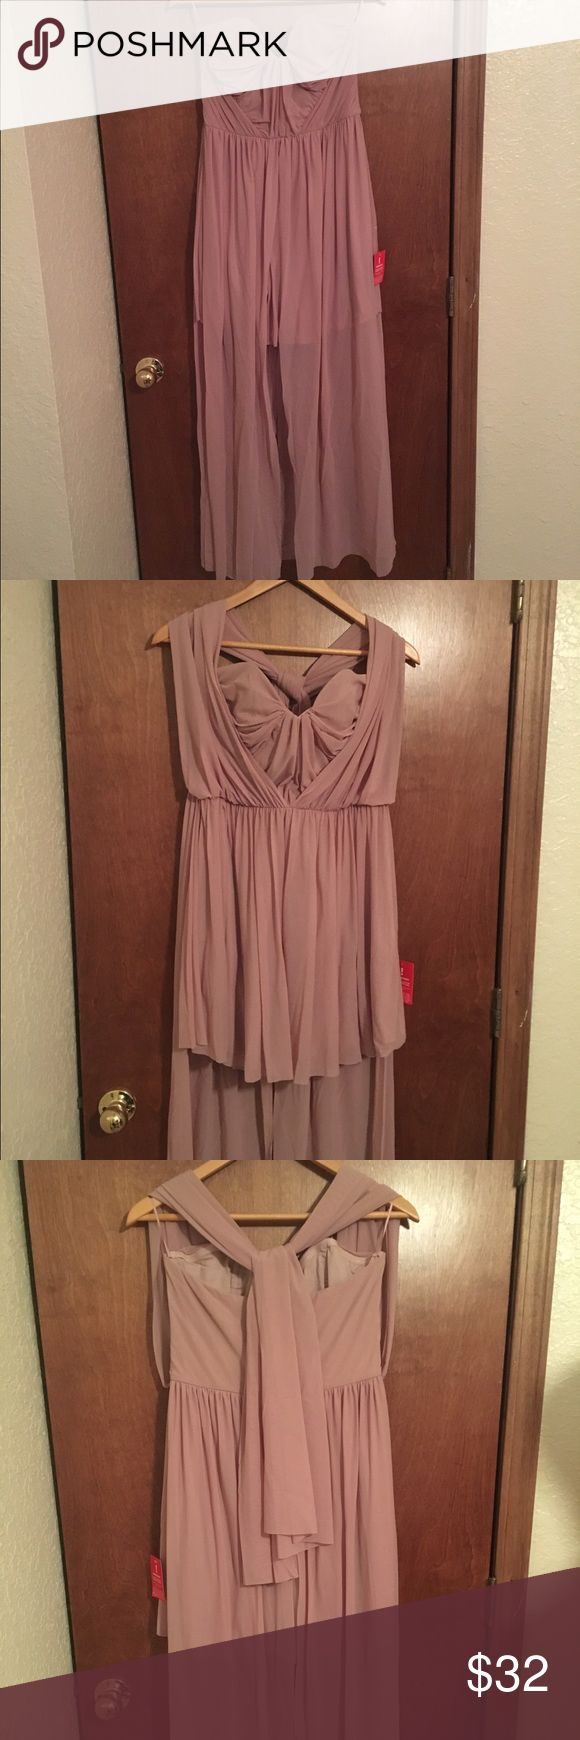 ASOS BLUSH PINK convertible prom dress!!! Size 8 NEW with the tag. Never worn once, I ordered from a British website and couldn't return it. Nothing wrong with it, just found one I liked more to wear. ASOS Dresses Prom